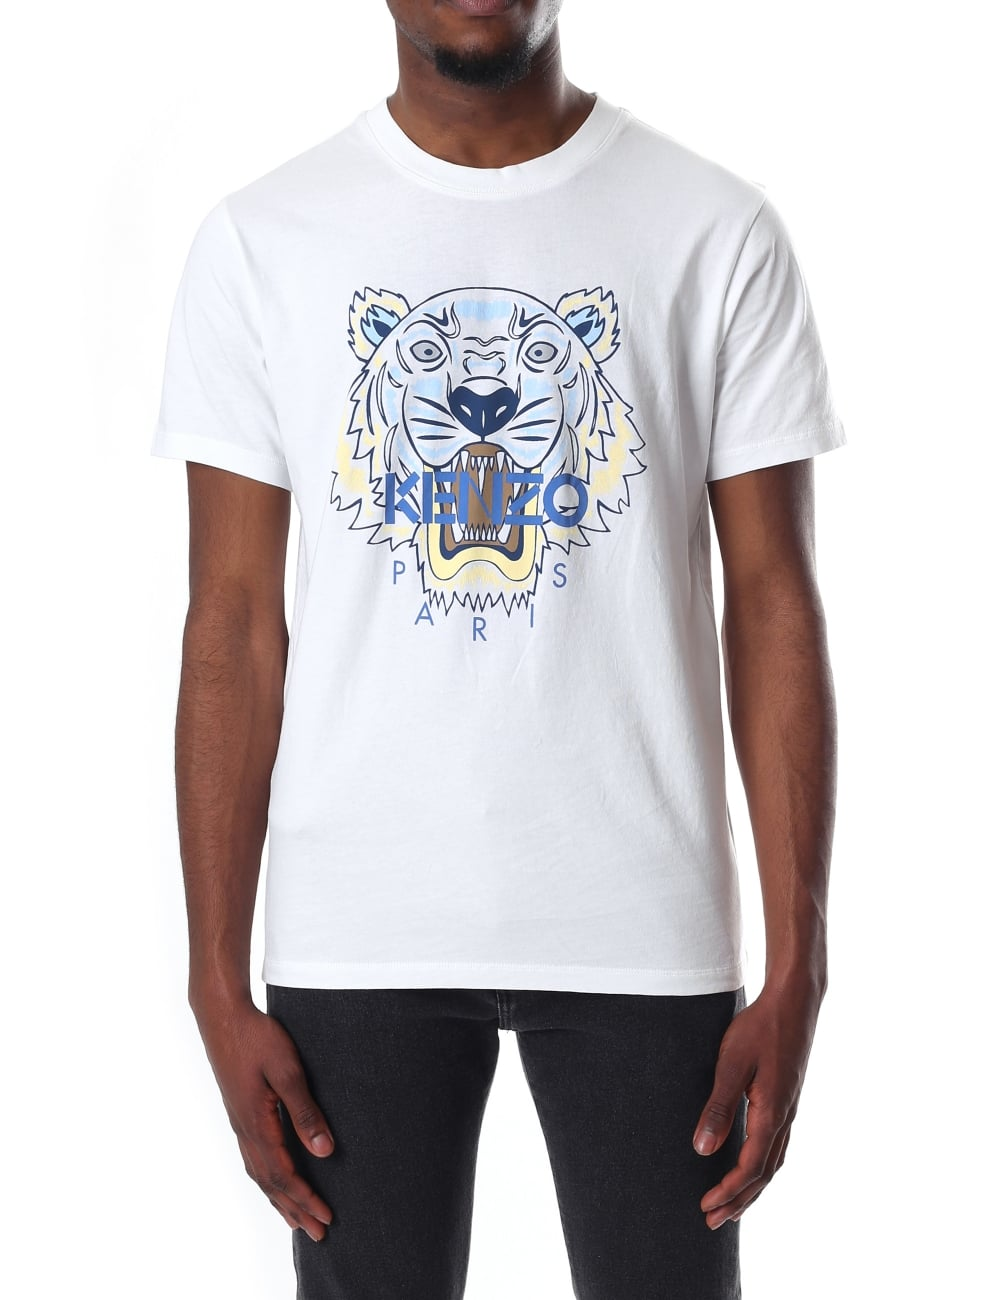 6c23f3c34872 Kenzo Men's Short Sleeve Tiger T-Shirt